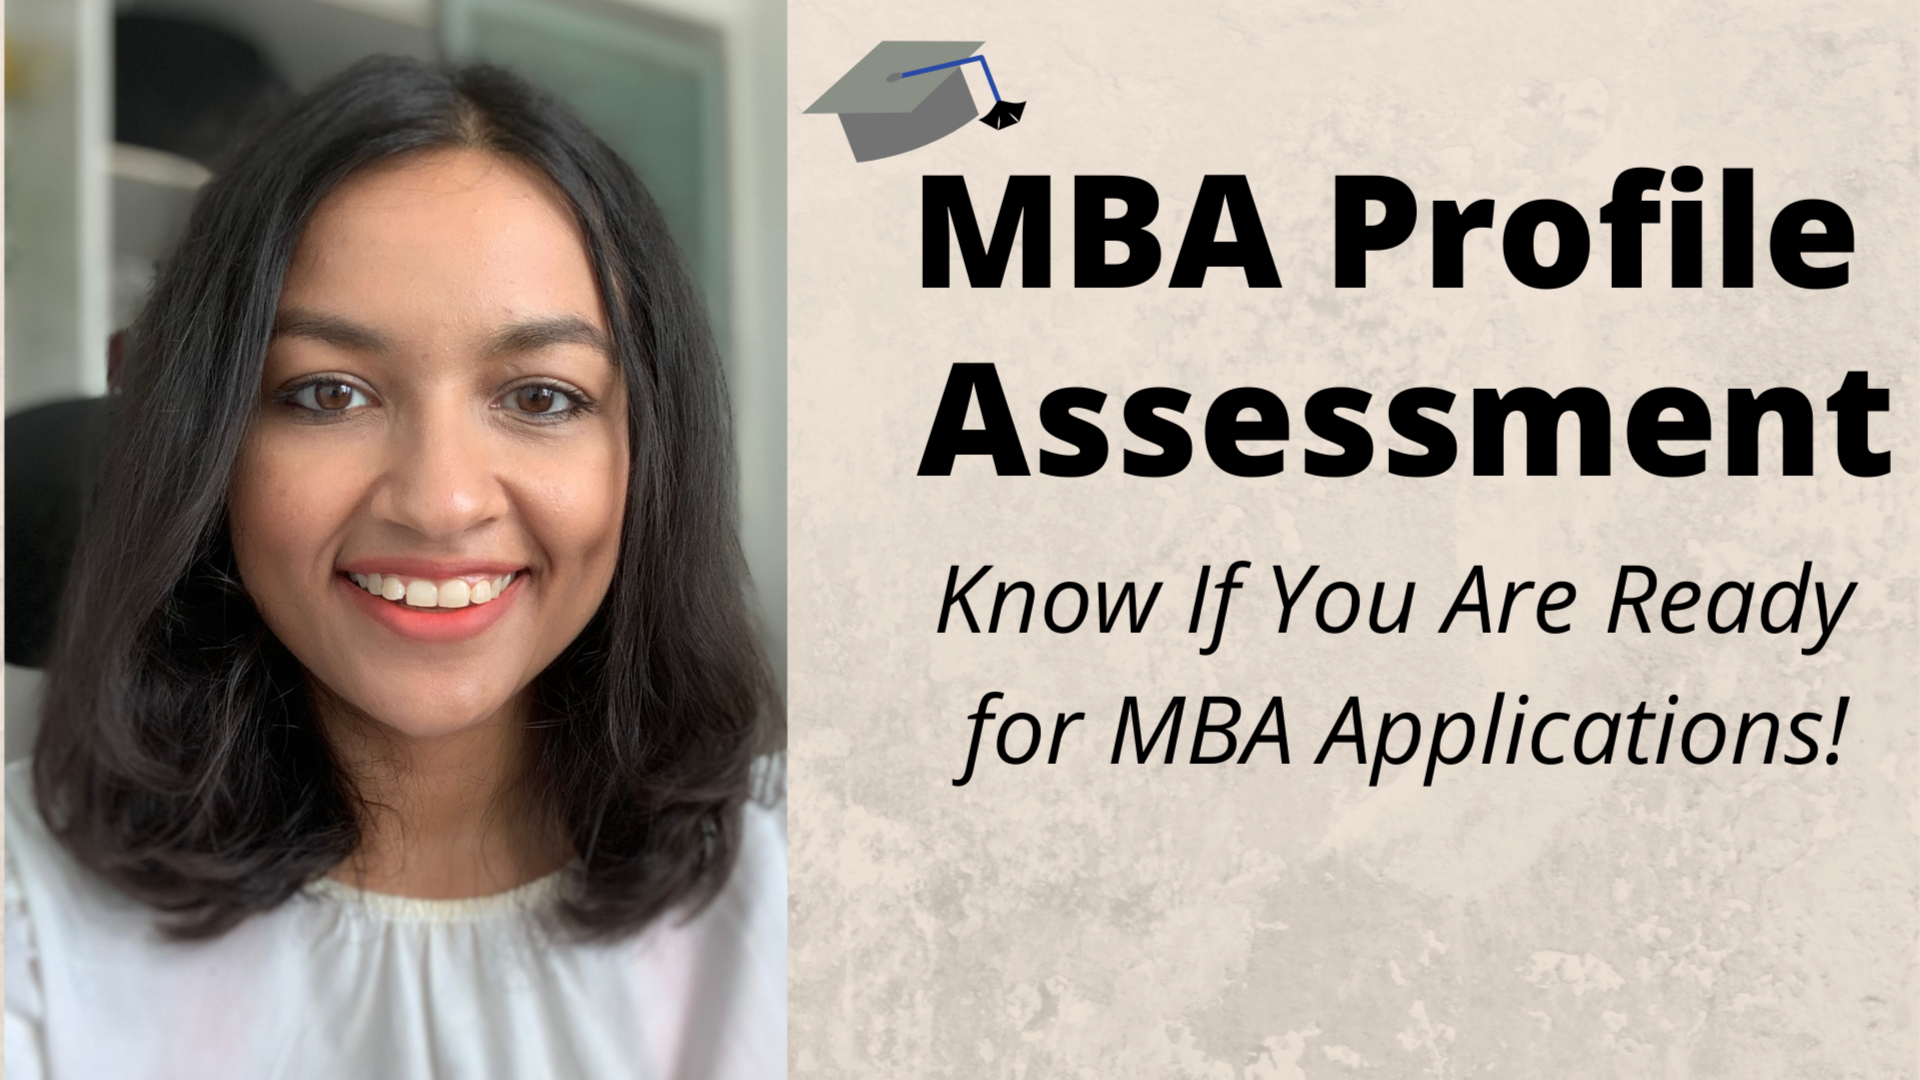 MBA Profile Assessment - How To Know You Are Ready for MBA Applications?